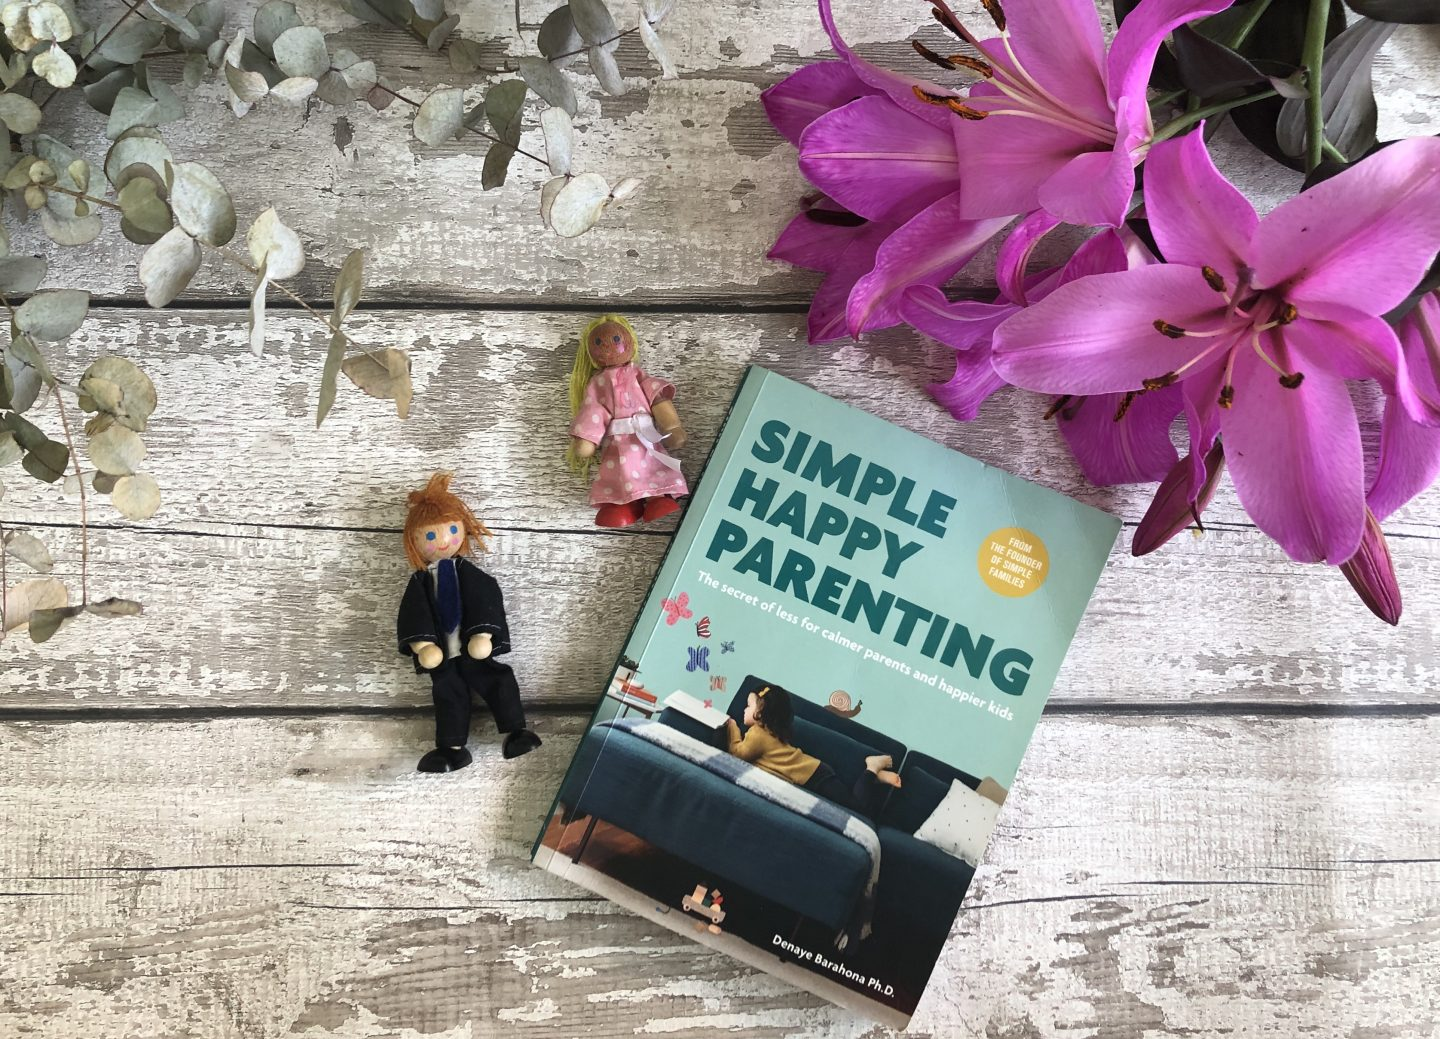 Simple happy parenting book